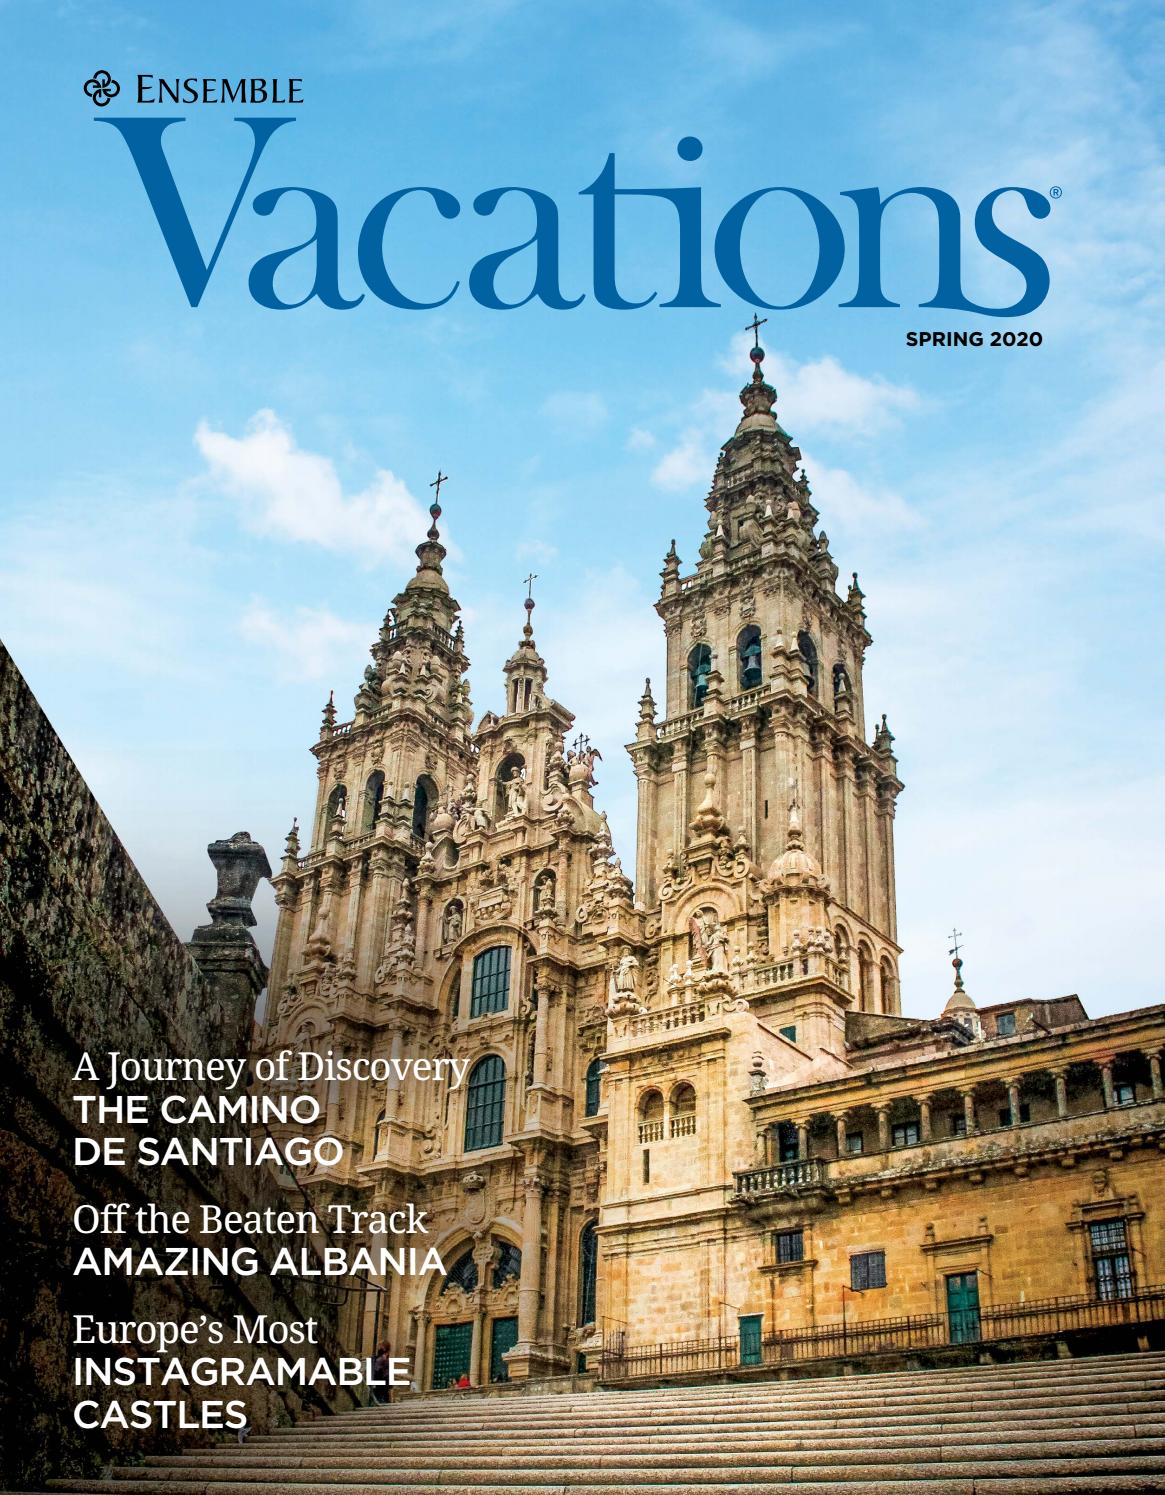 Ensemble Vacations Spring 2020 By Ensembletravel Group Issuu